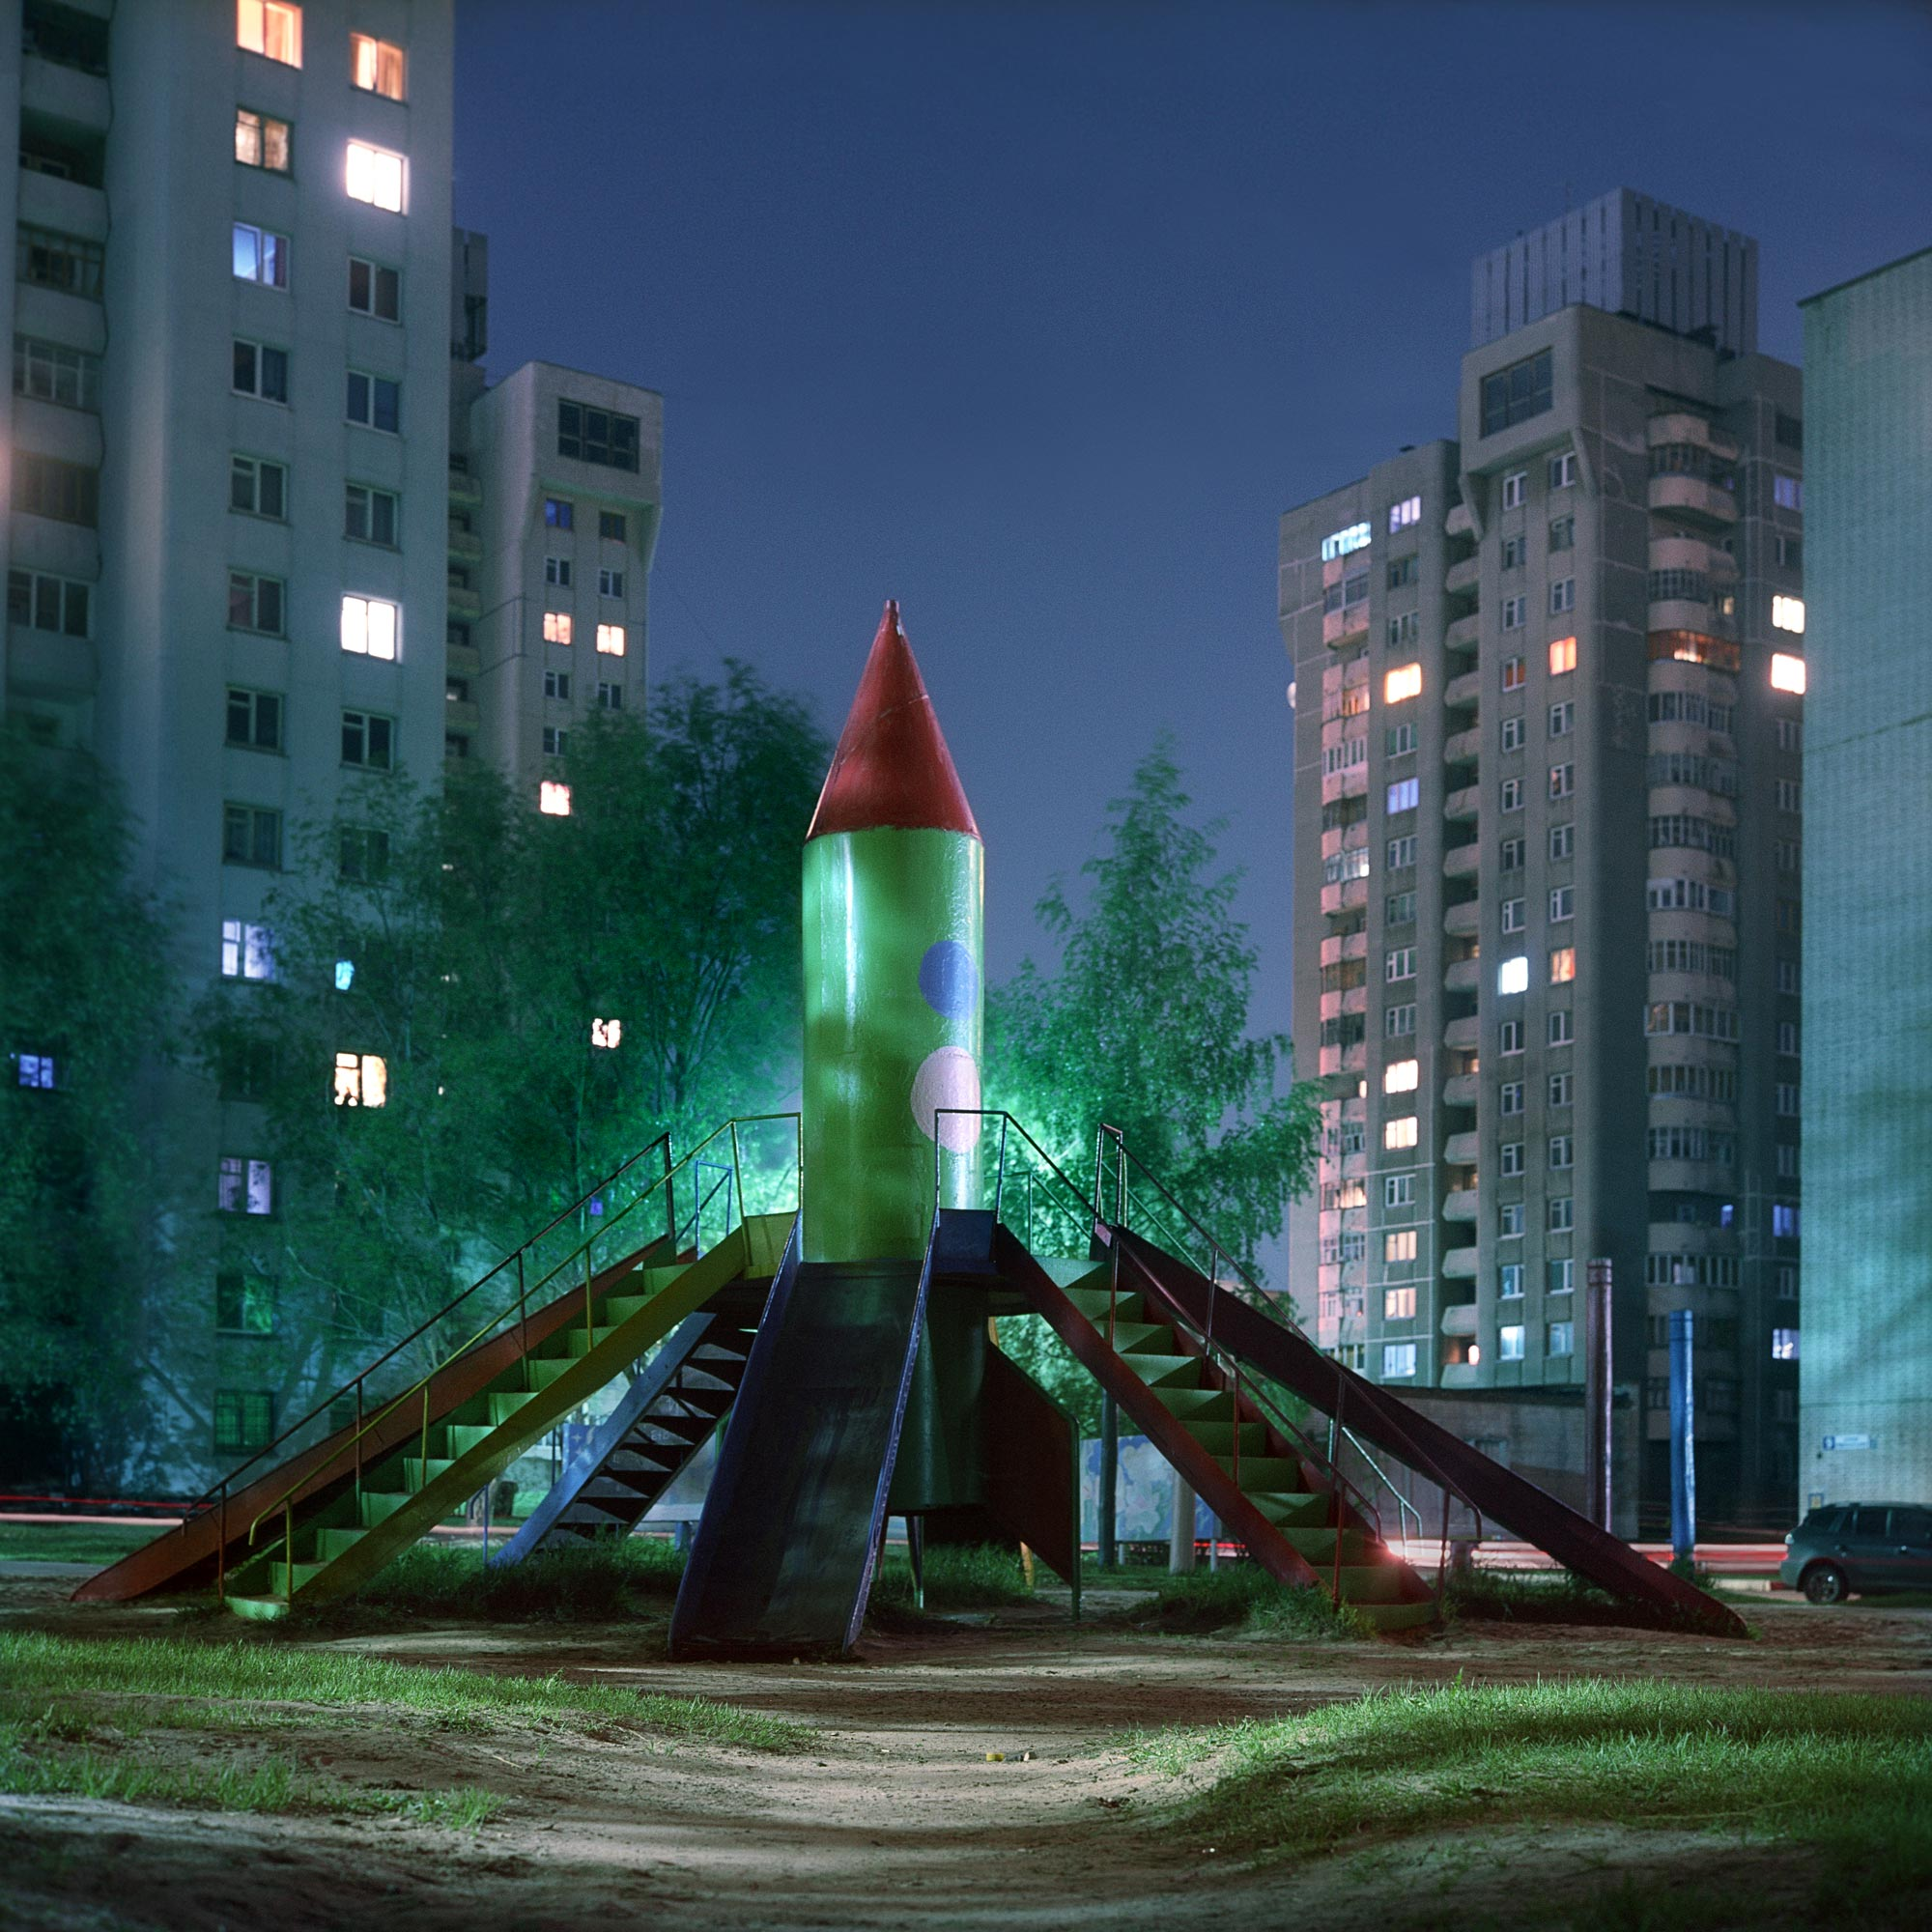 Rockets away: how Soviet space dreams became child's play